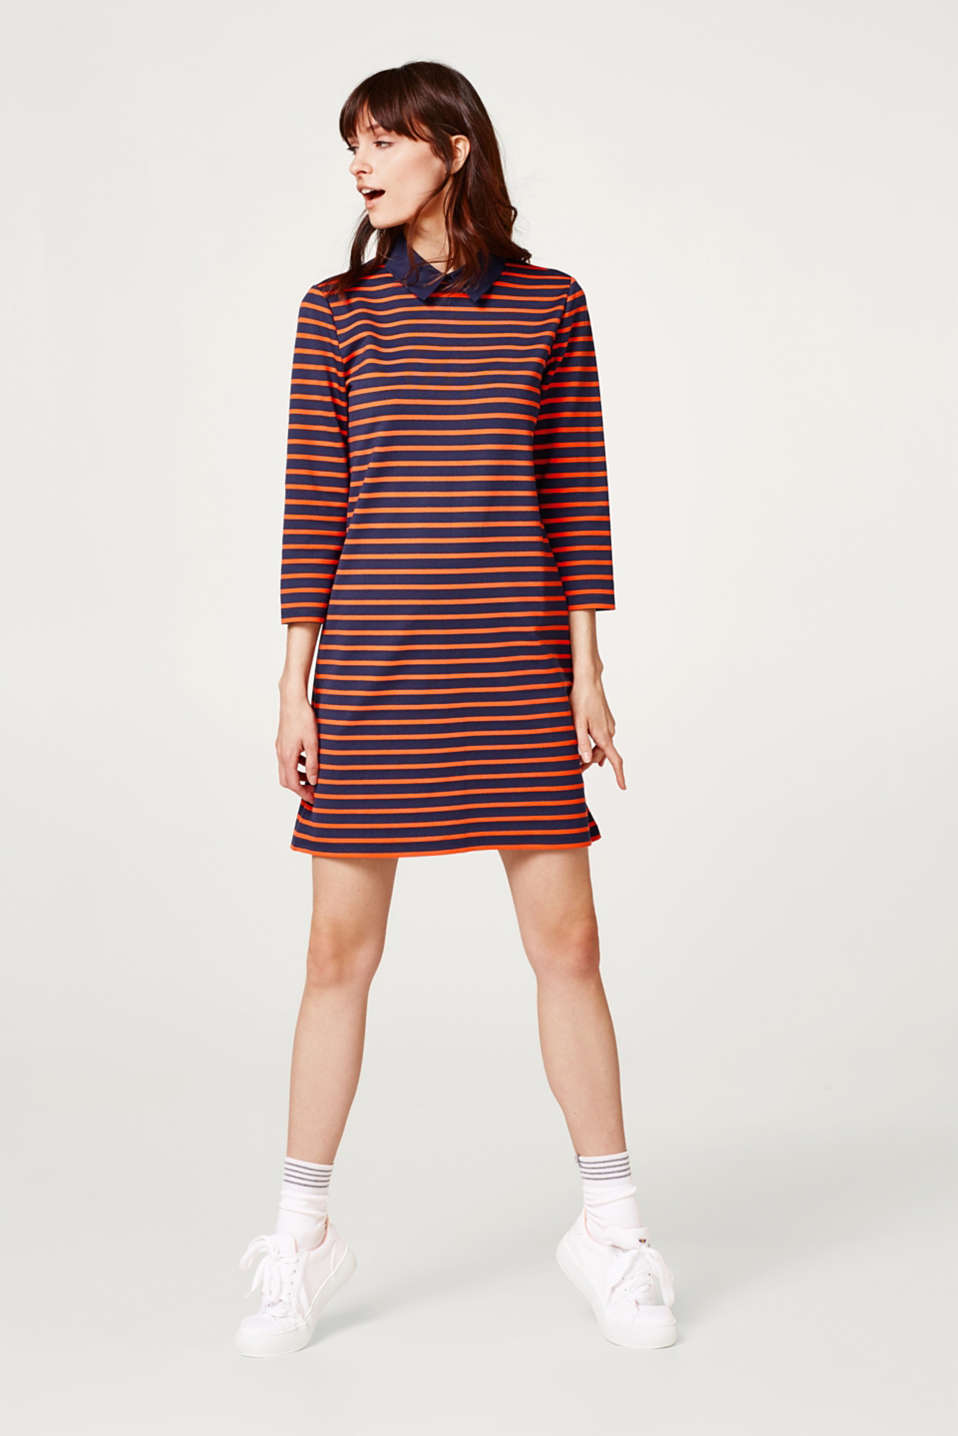 Striped dress with stretch for comfort